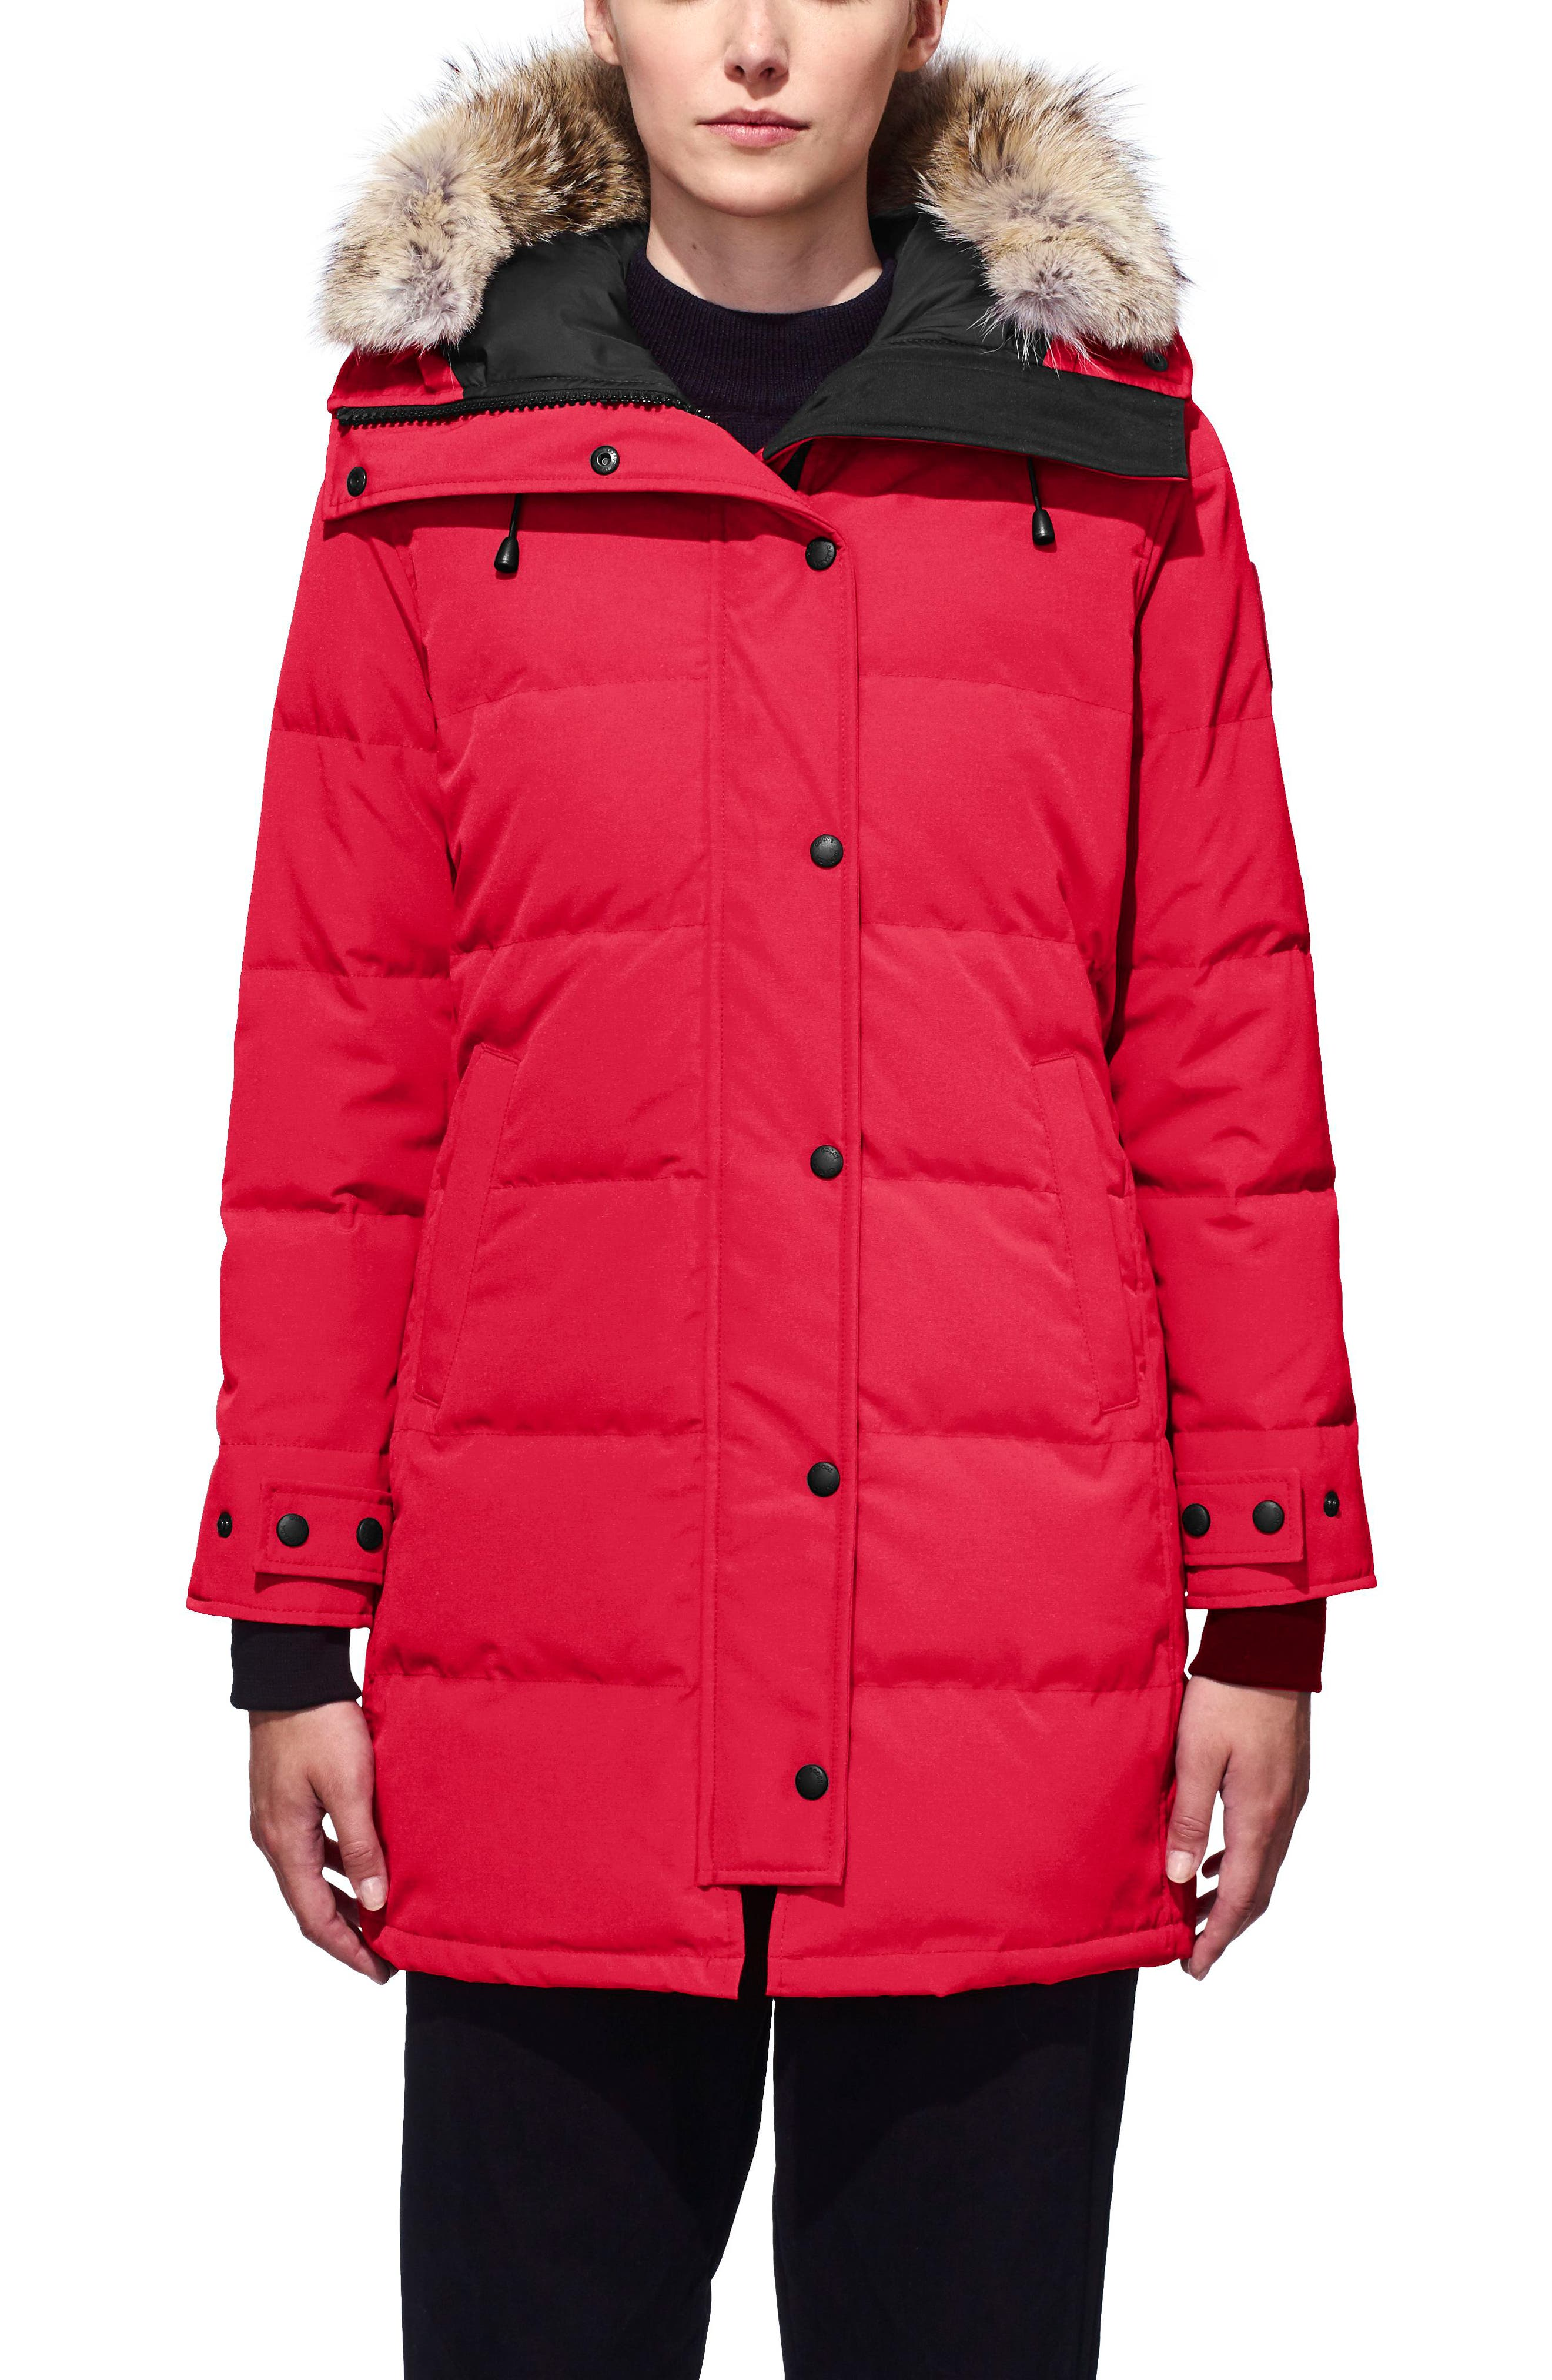 CANADA GOOSE, Shelburne Fusion Fit Genuine Coyote Fur Trim Down Parka, Main thumbnail 1, color, RED